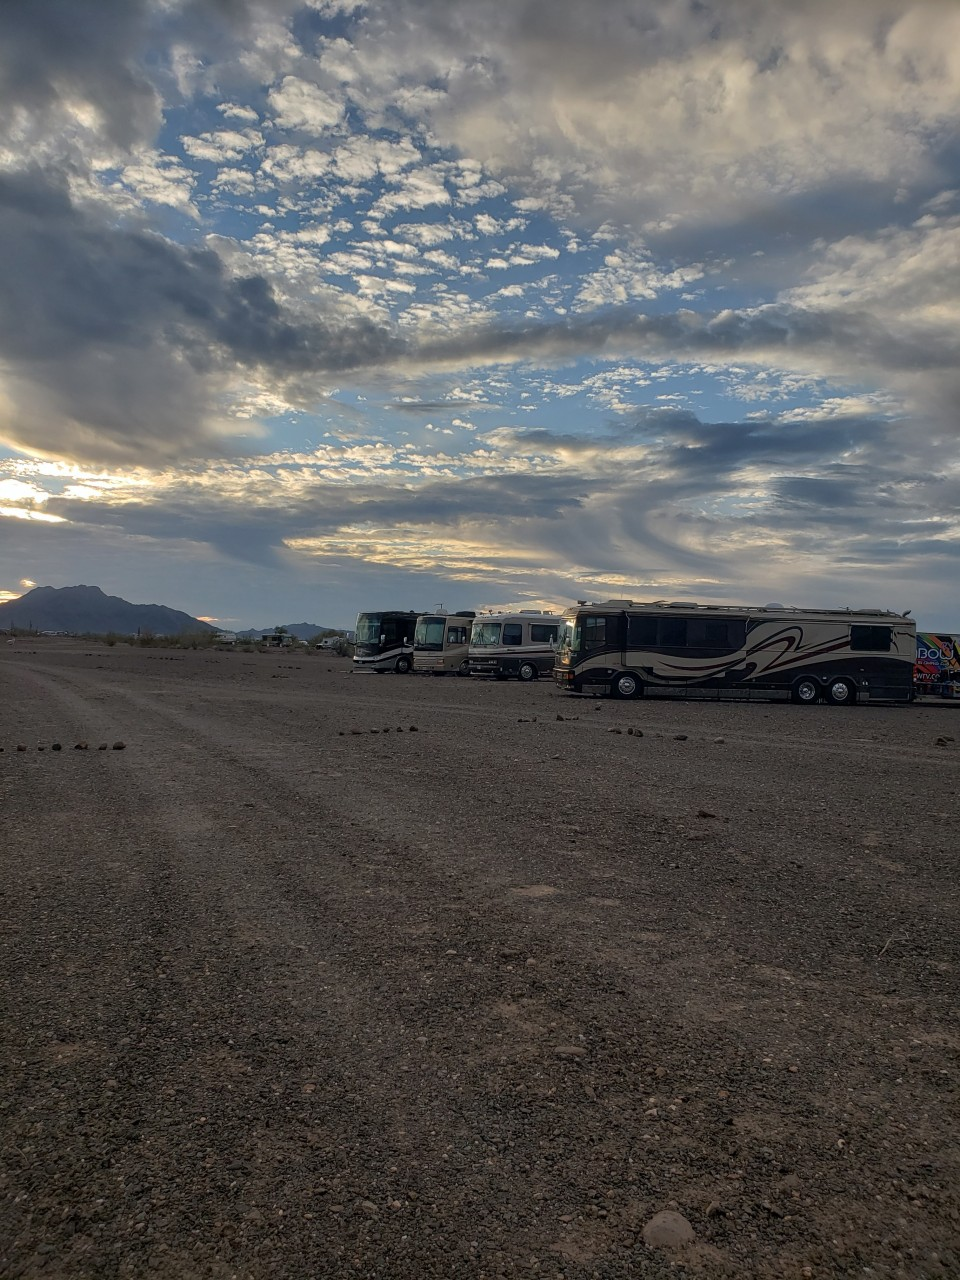 Day 4 Wednesday Quartzsite Rally FYI: There were no issues with entering the La Posa South Kiosk BLM in regards to the Government shutdown.  Day 4 and you were still able to set up camp in the BLM areas.